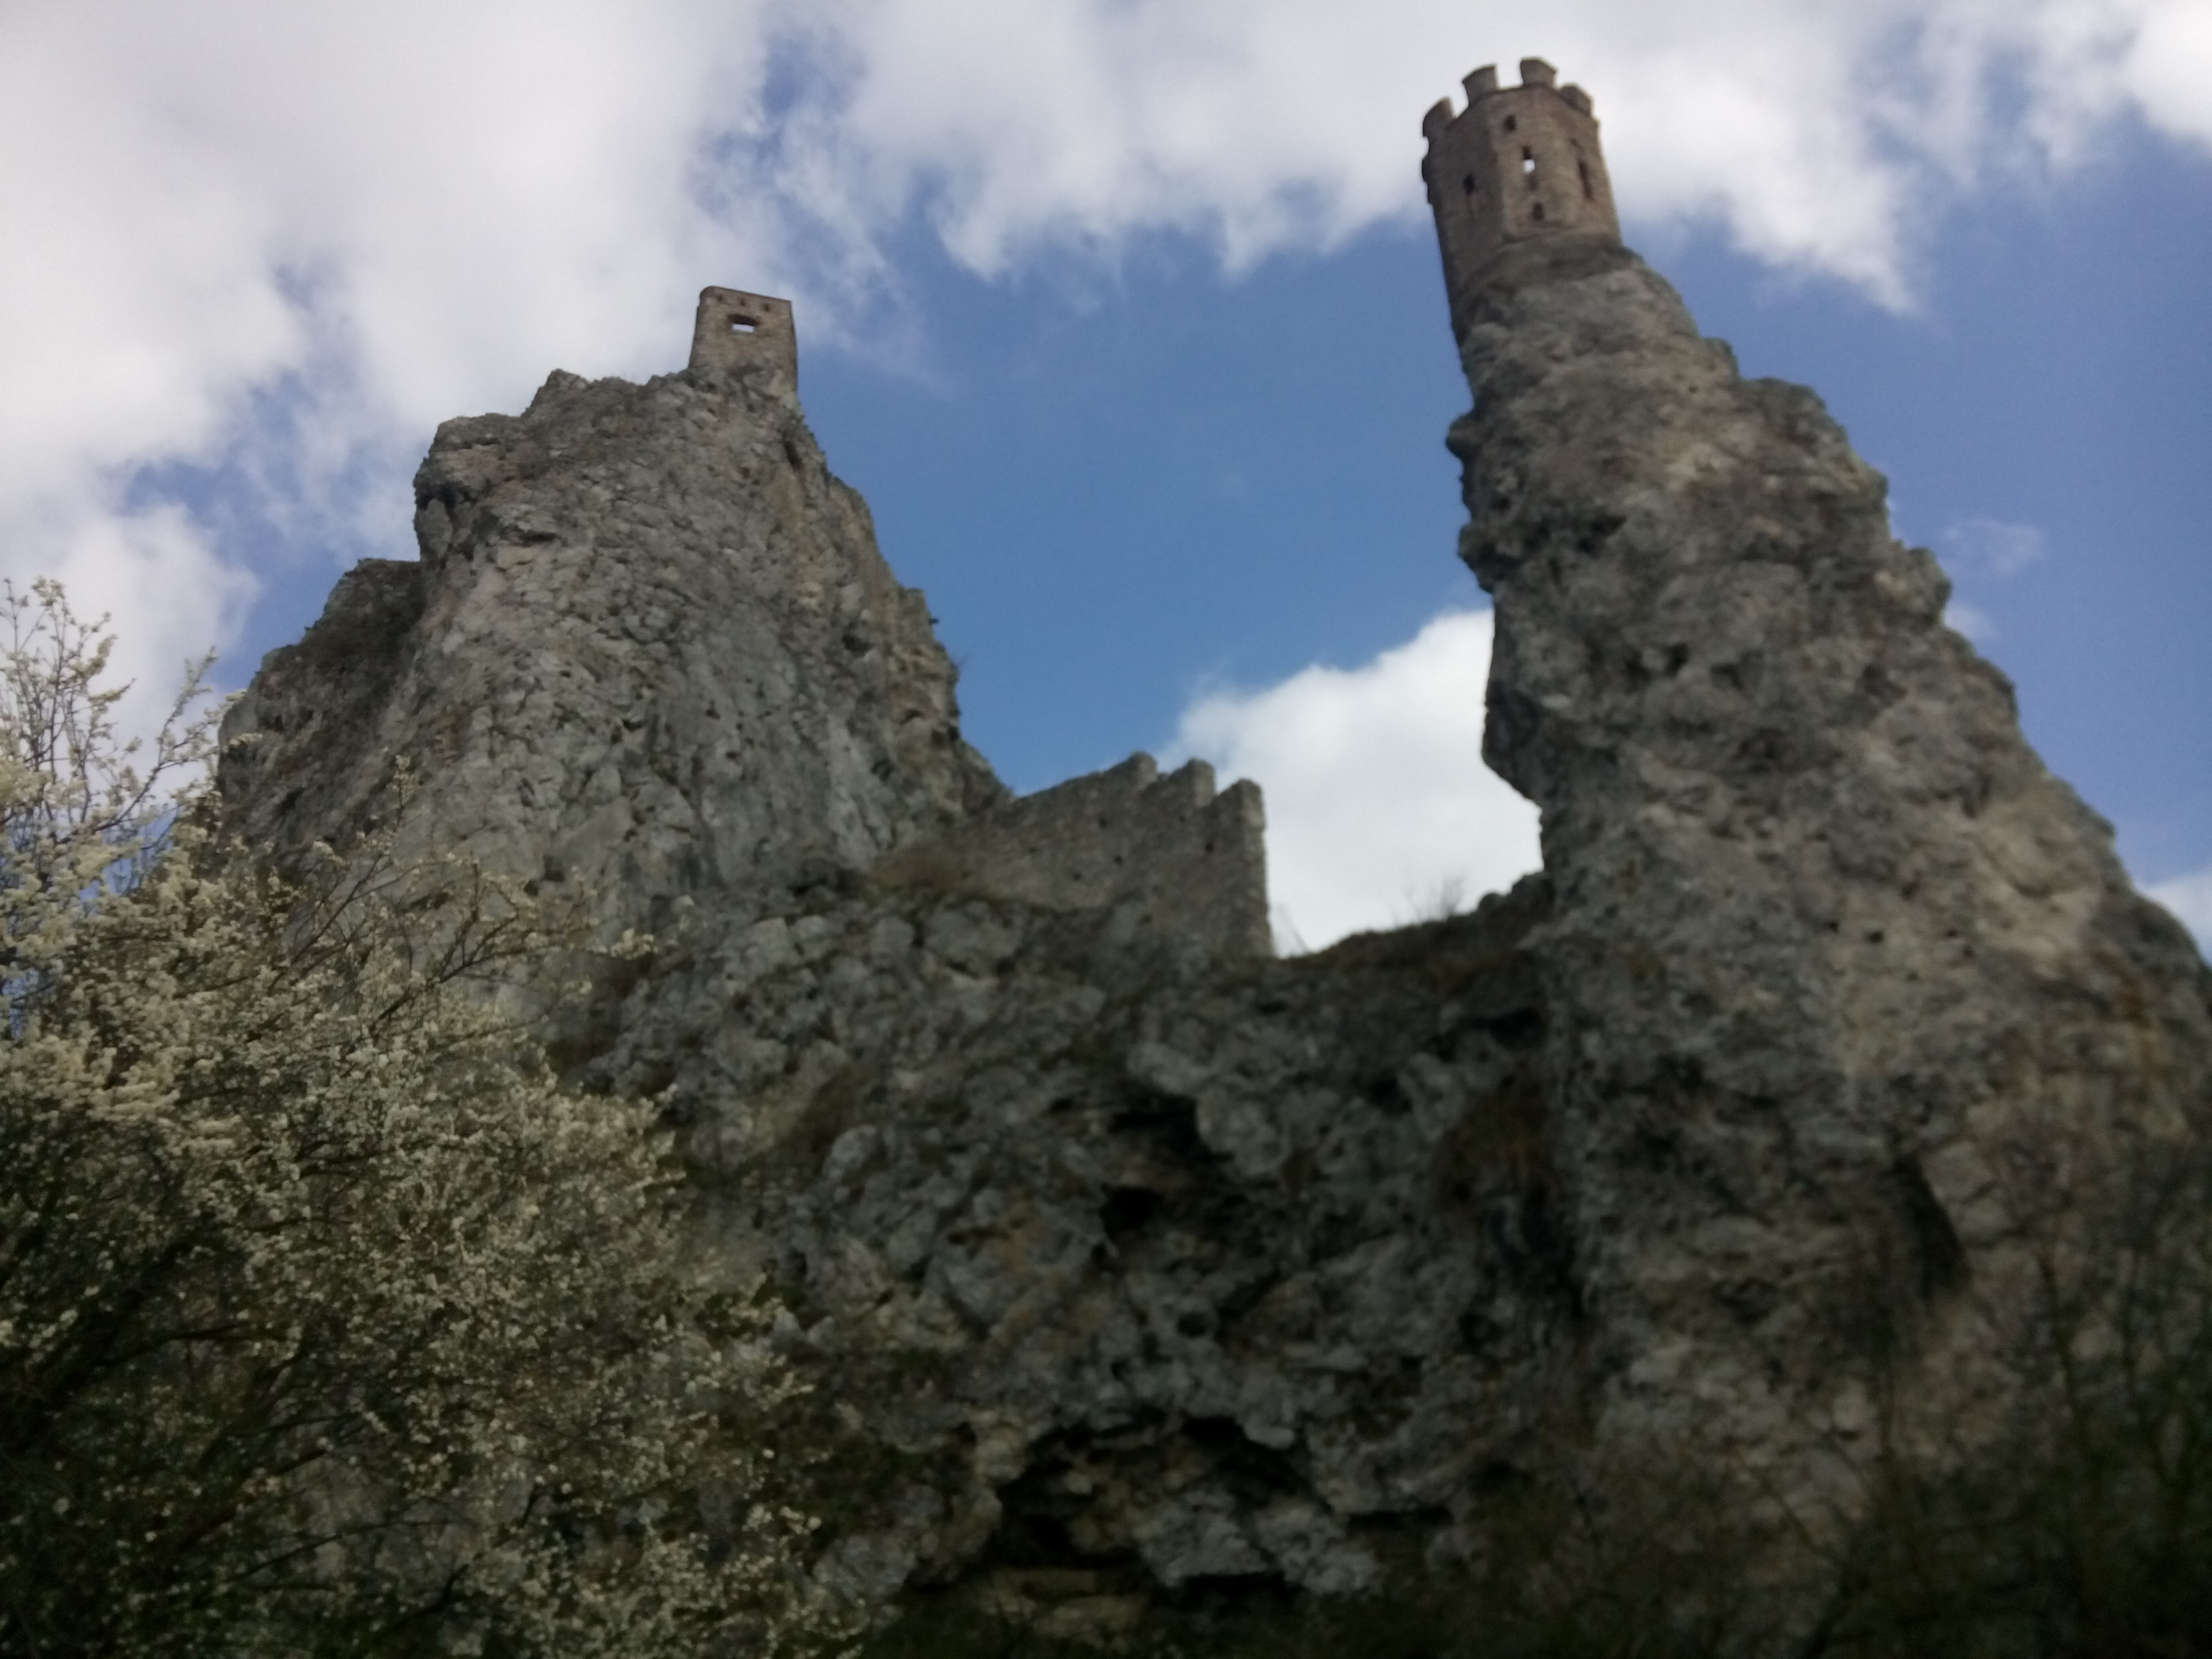 View from below, looking up a rugged cliff topped with a small turreted tower, against blue and white sky